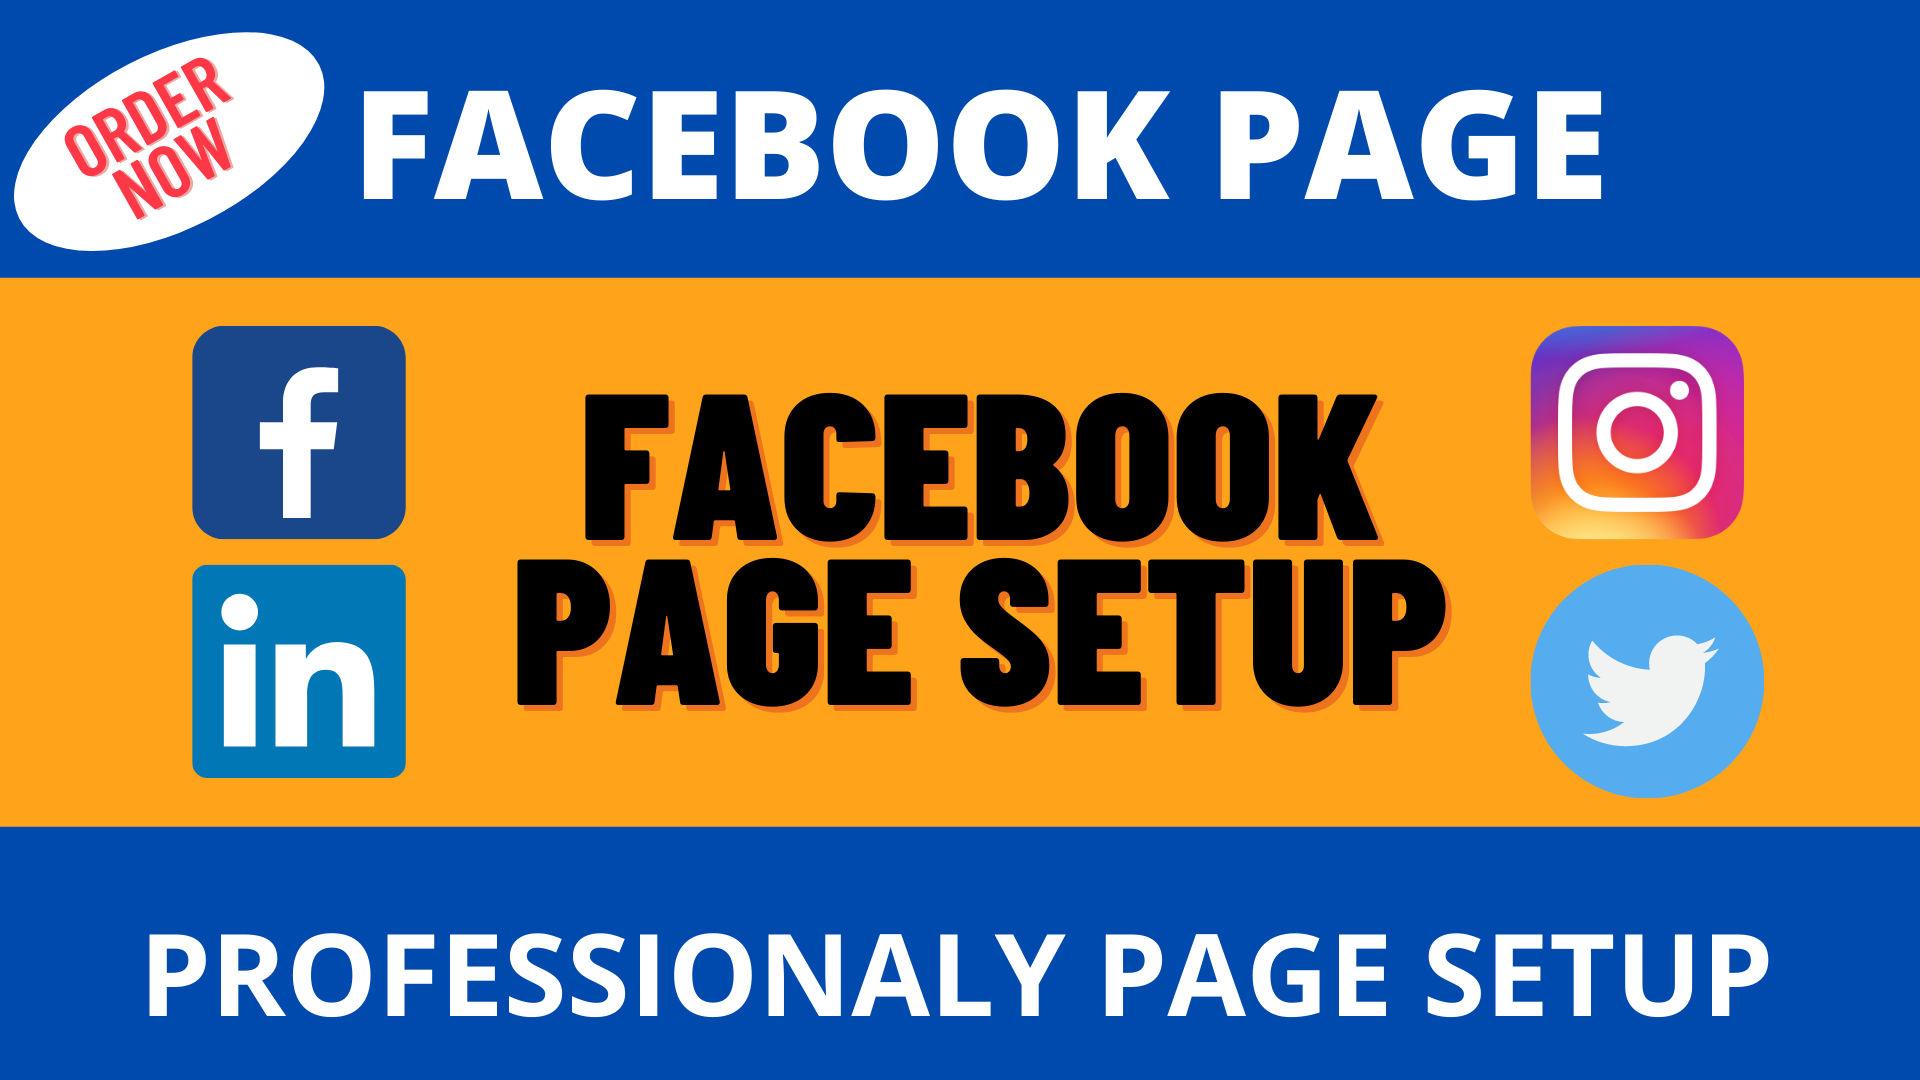 I will create a professional FB business page